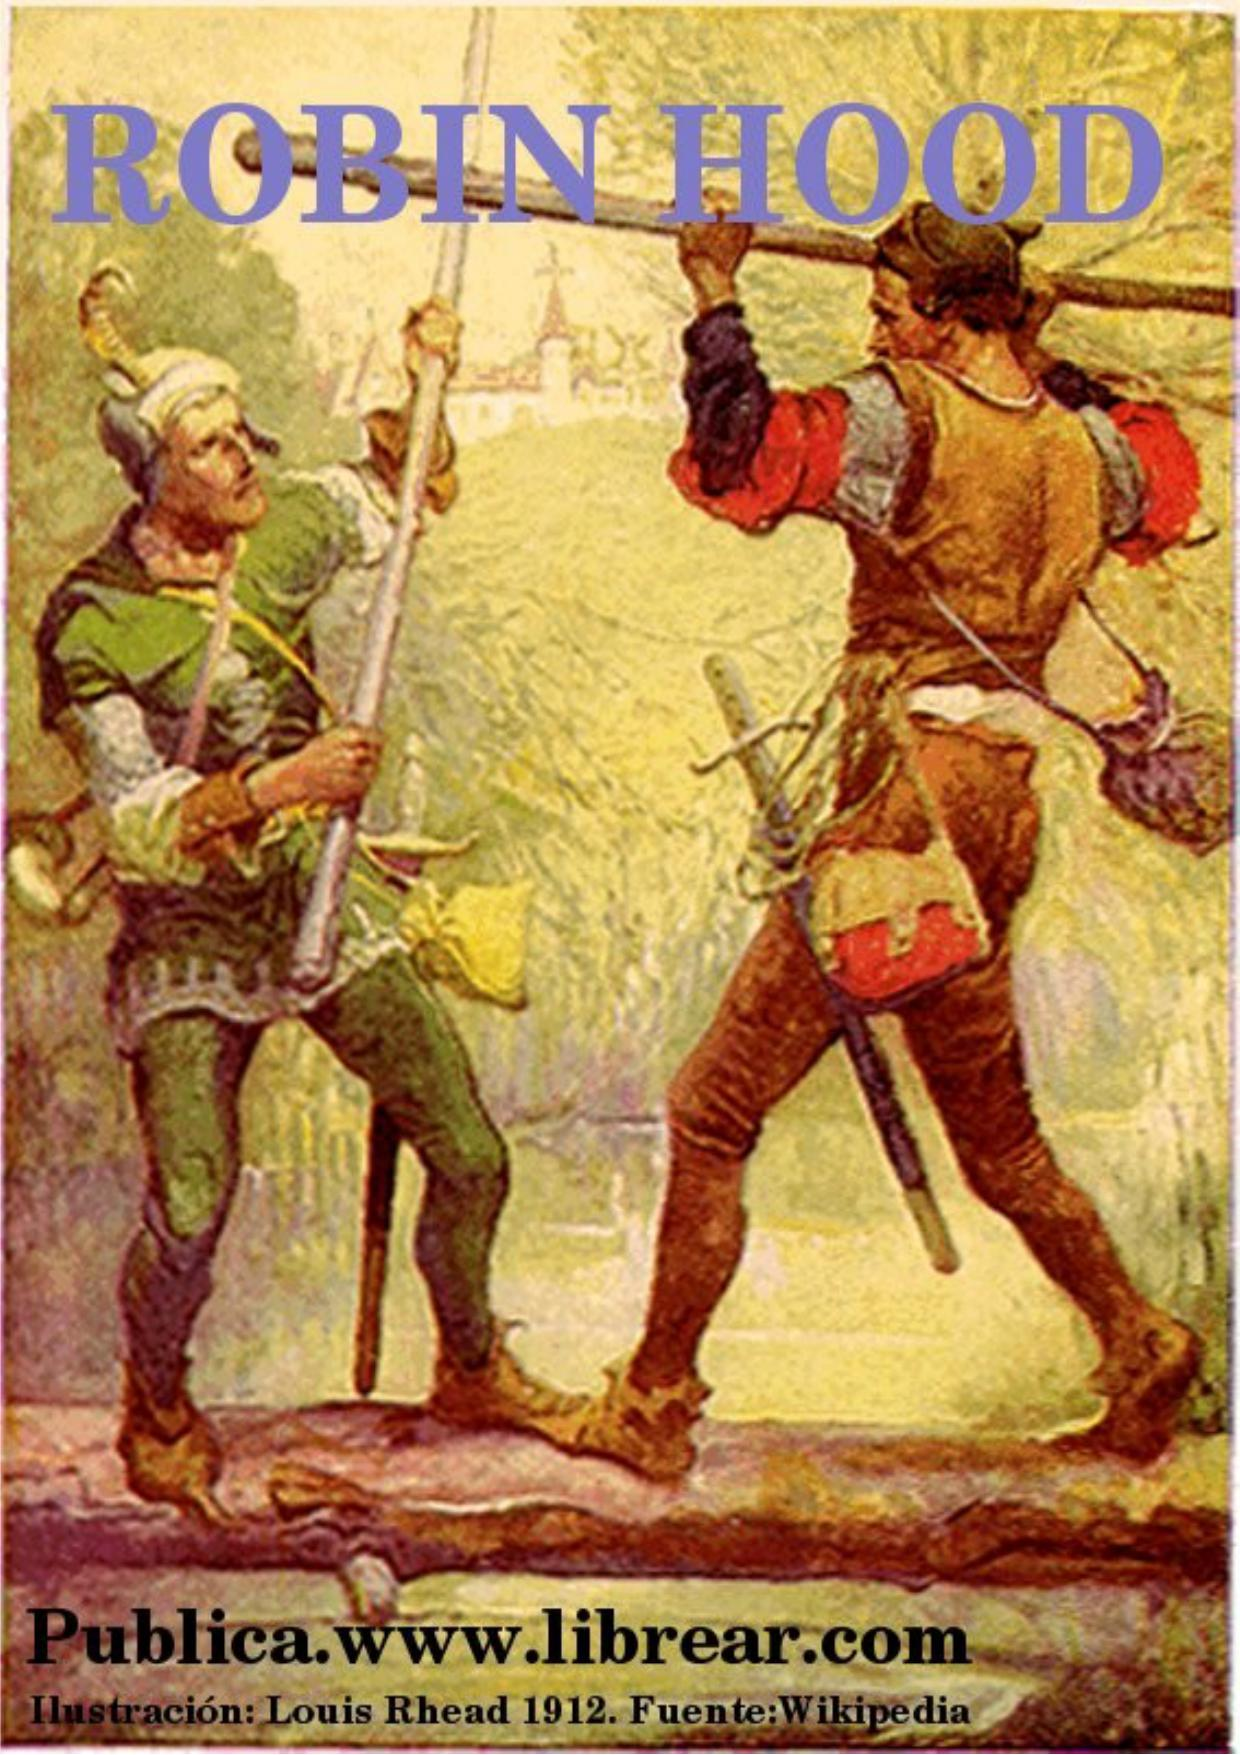 Libros Kindle Descargar Robin Hood Kindleton Descarga Libros Gratis Para Kindle